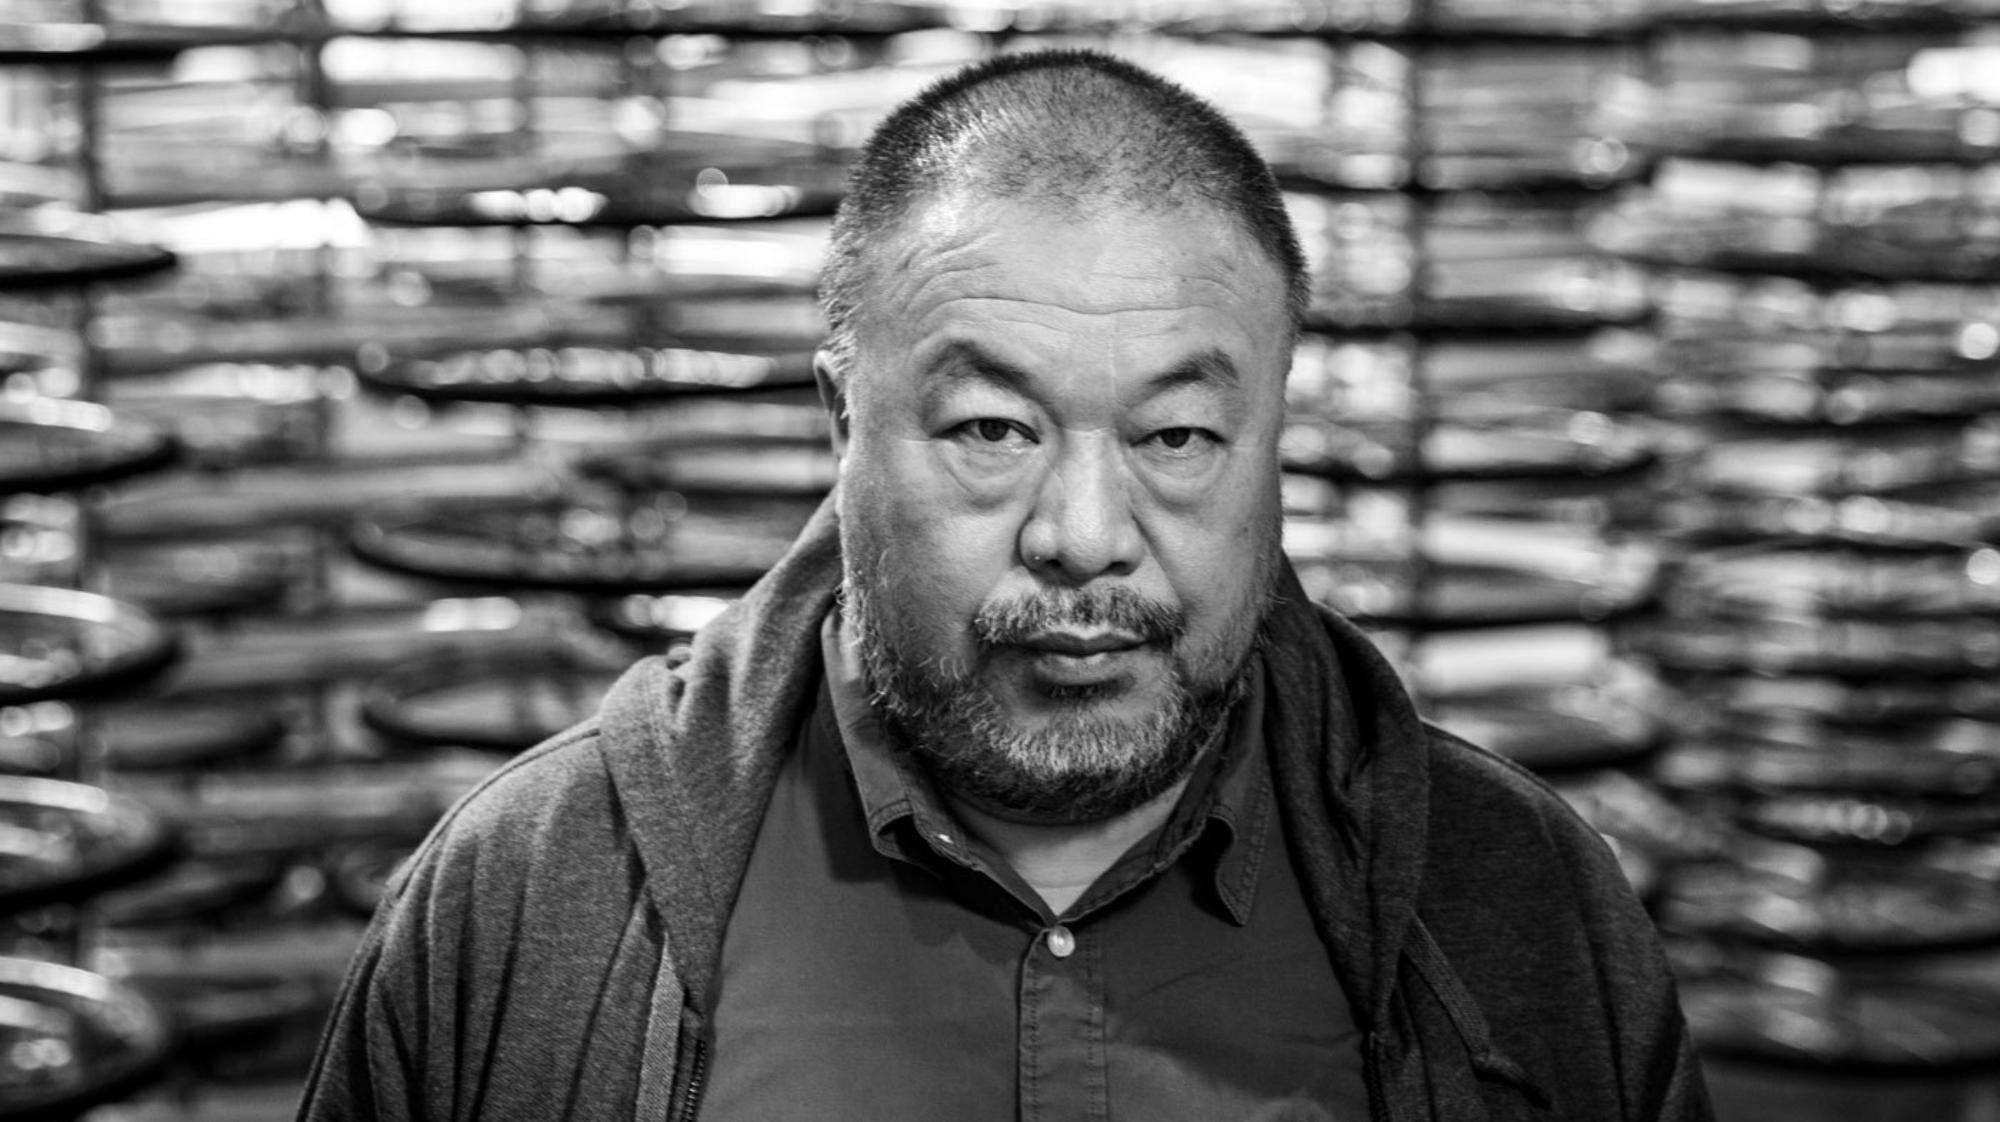 ai-weiwei-its-not-about-the-work-its-about-saying-something-1474892458.jpg